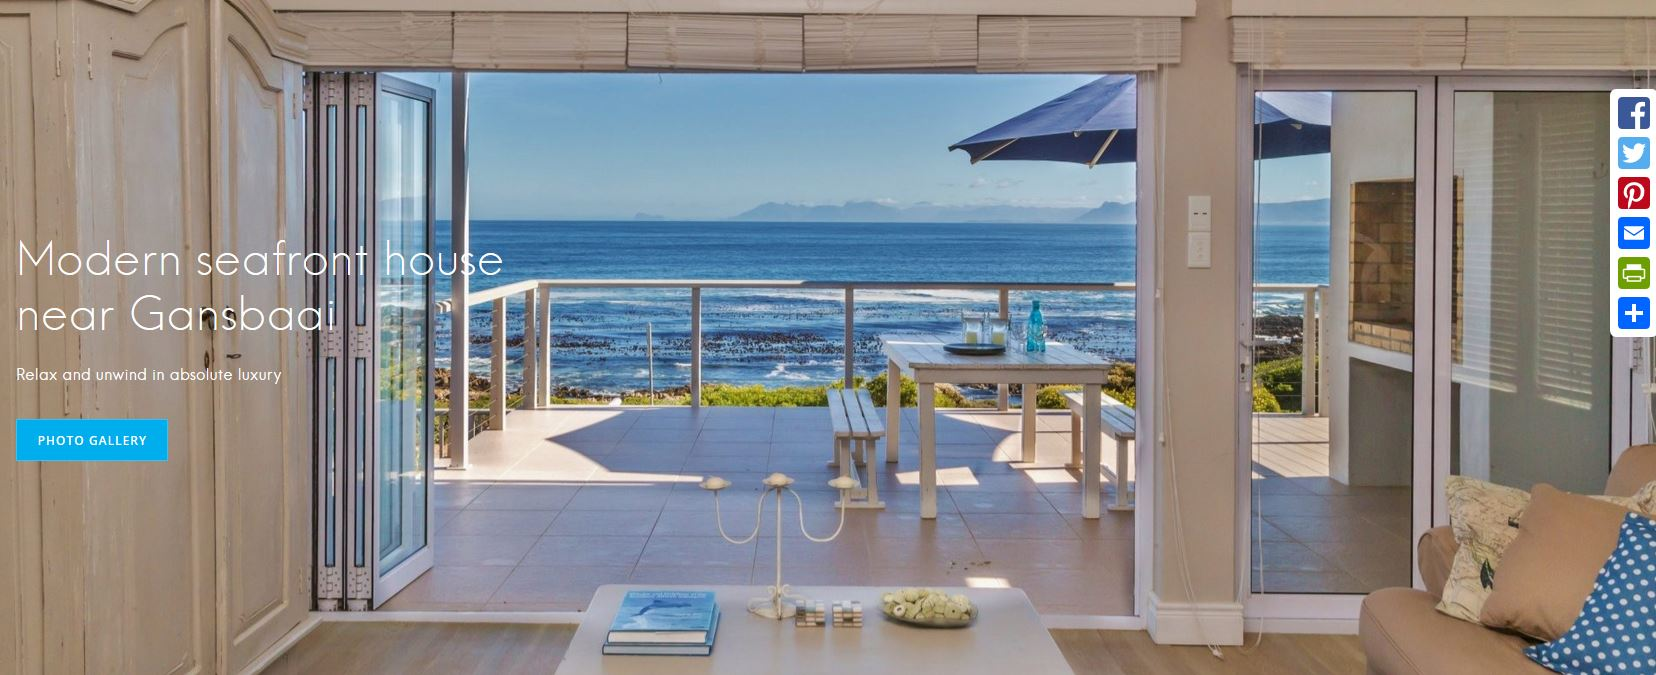 Gansbaai holiday house